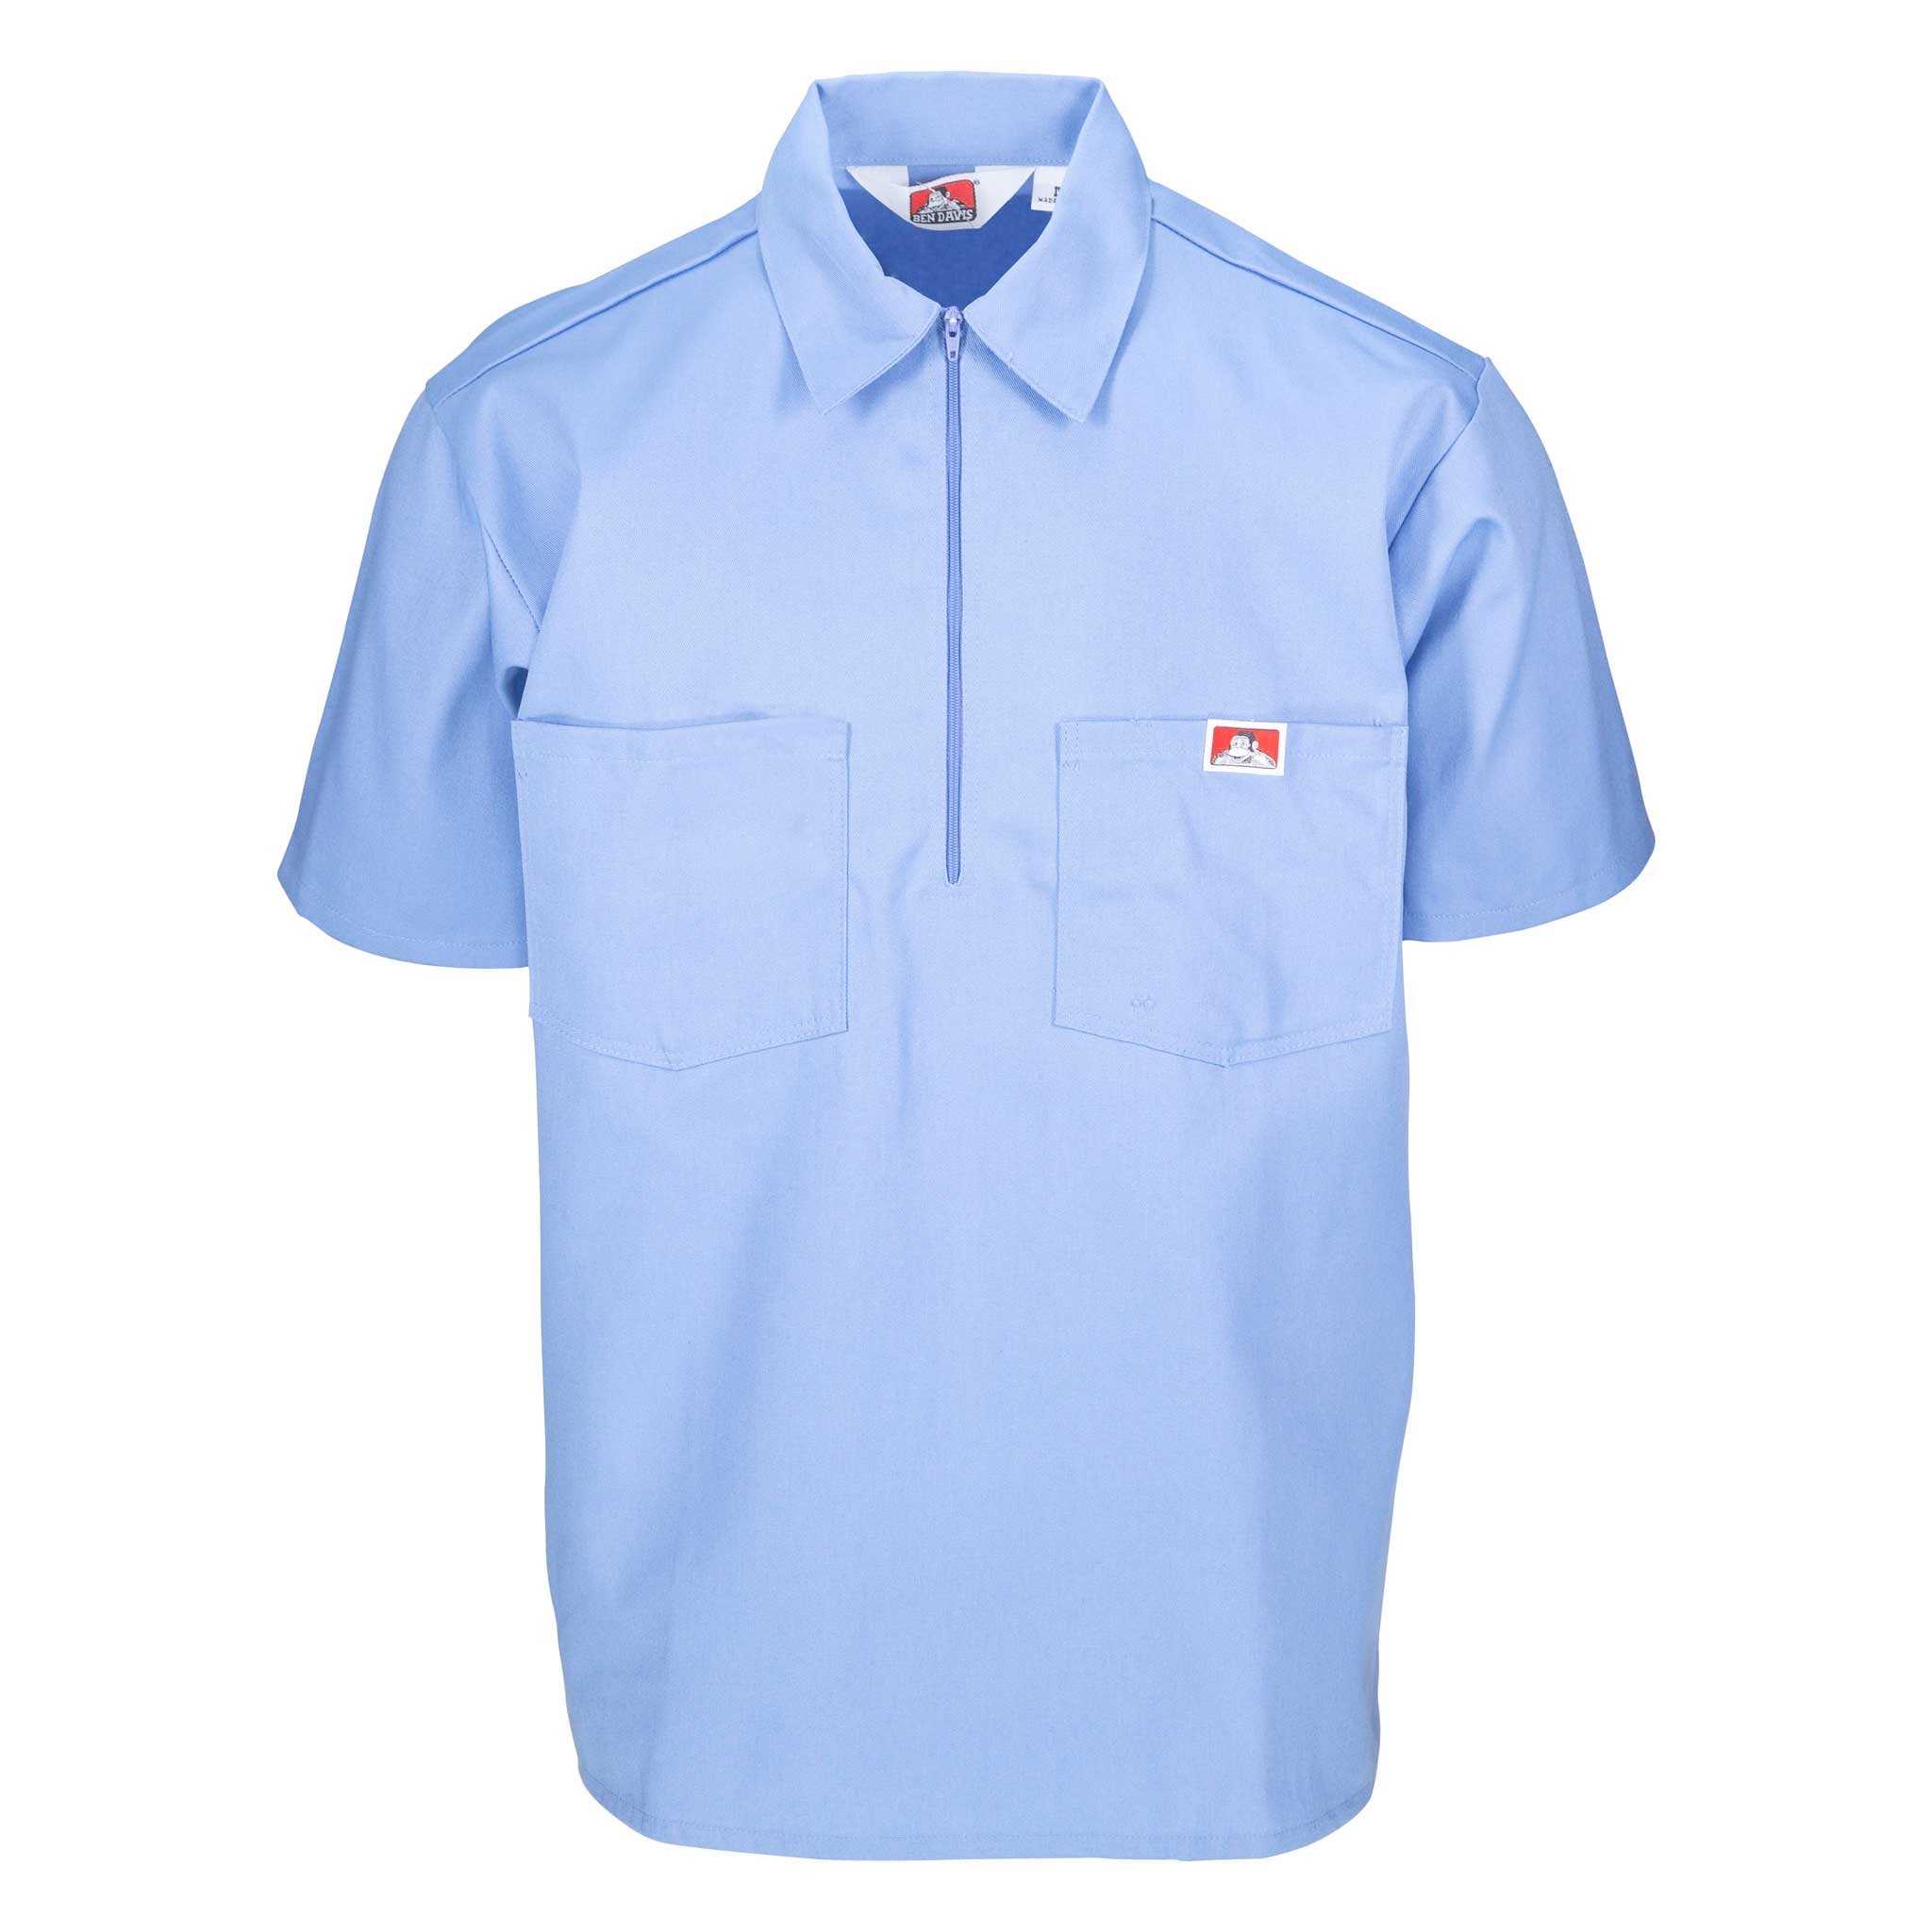 666904ef27 Ben Davis | U.S. Based Workwear Company - Gunthers Supply And Goods